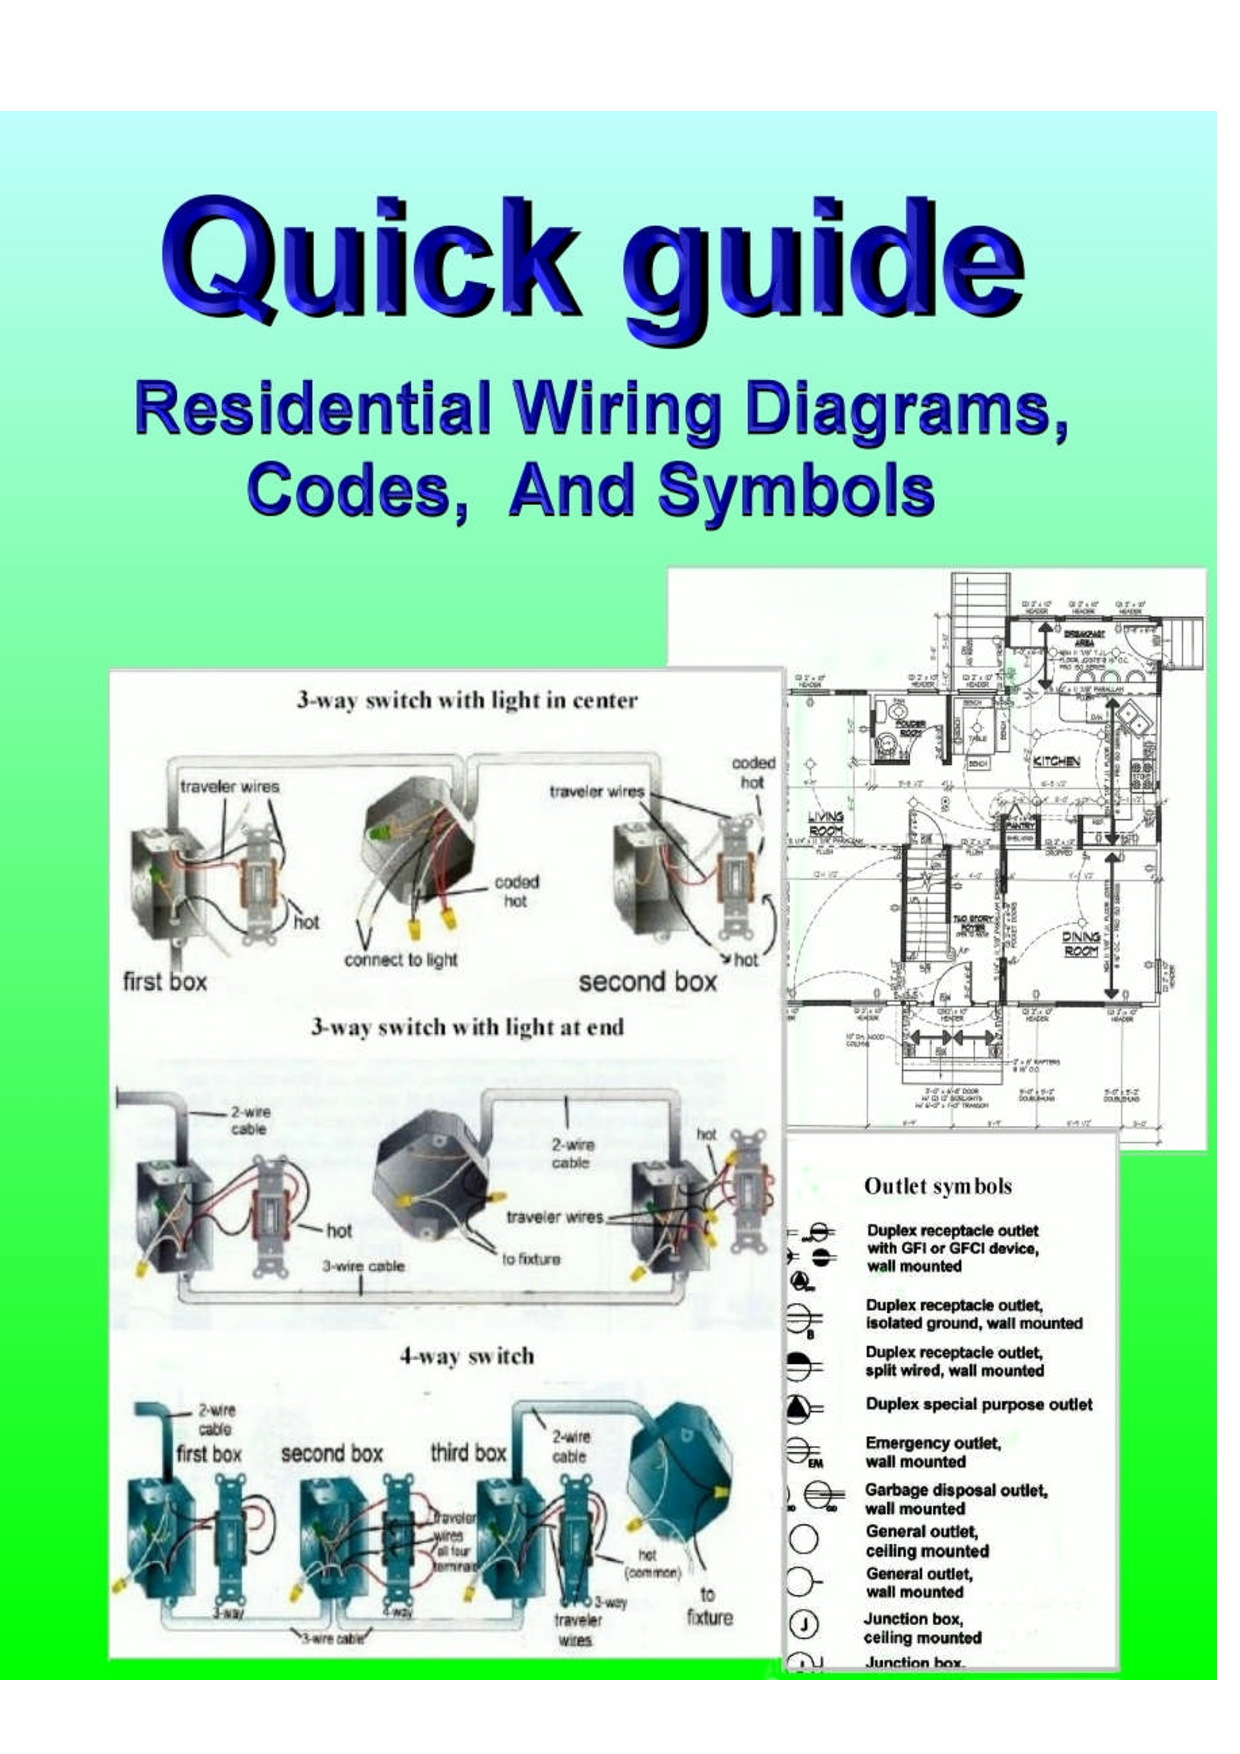 Home Electrical Wiring Diagramspdf Download legal